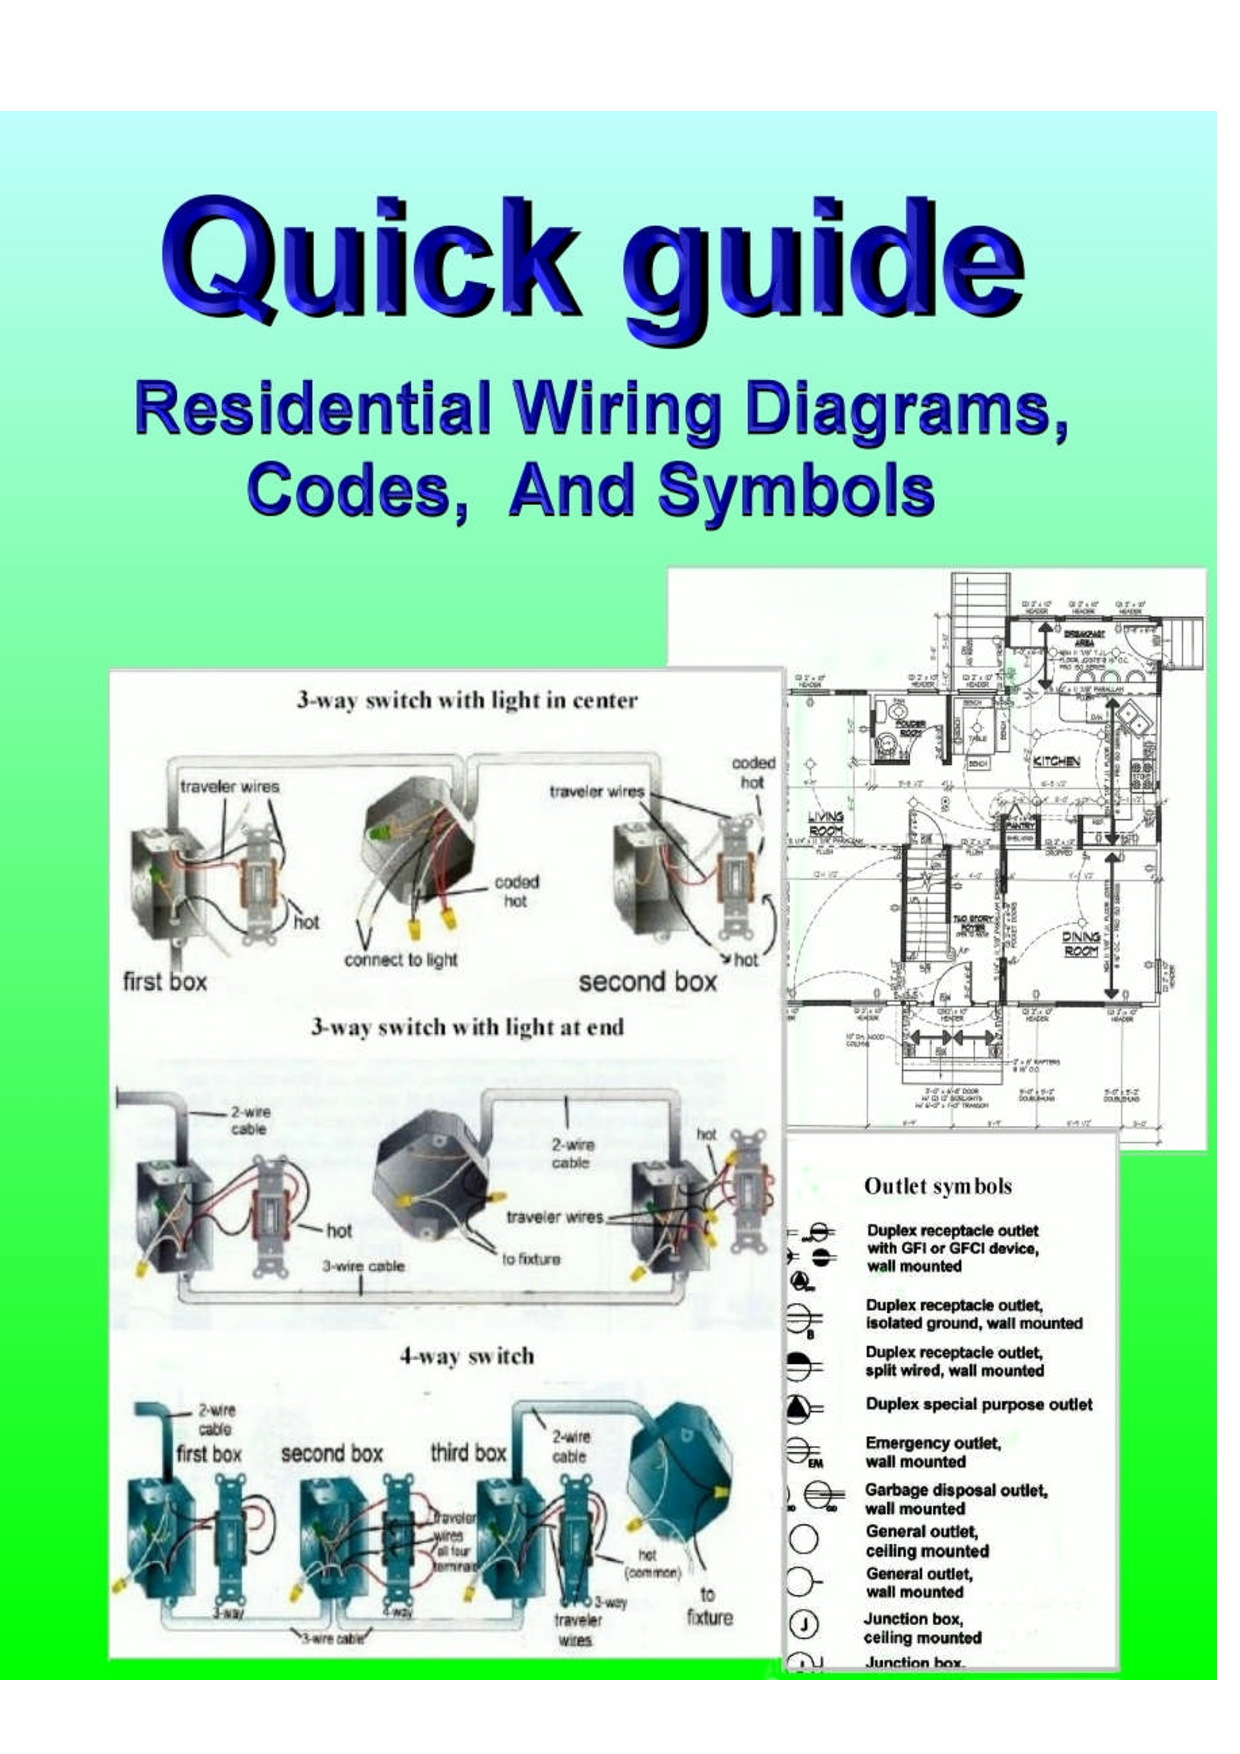 Home Electrical Wiring Diagramspdf Download legal